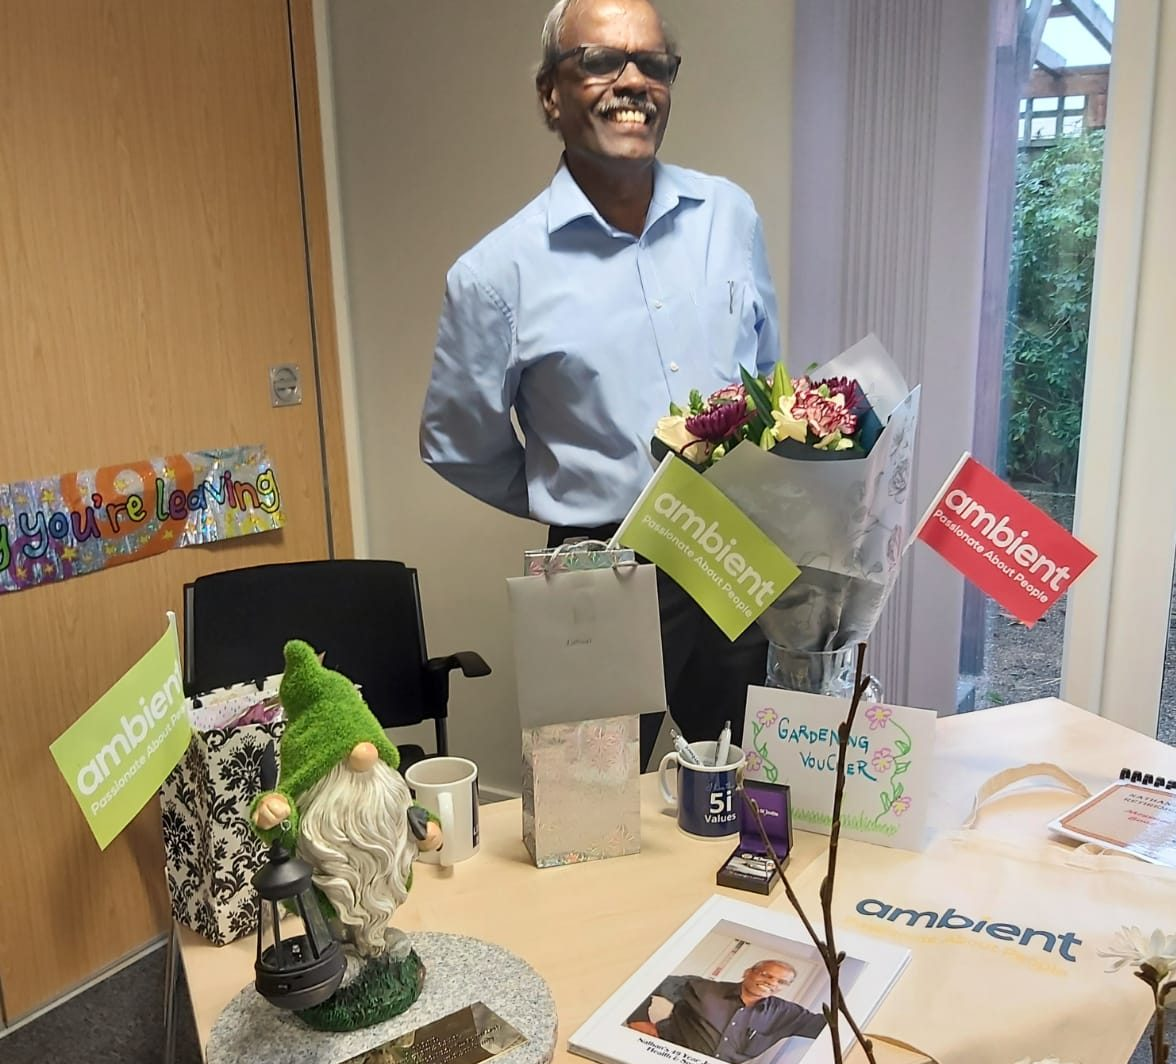 Five decades of service - Bromley care worker's retirement celebration